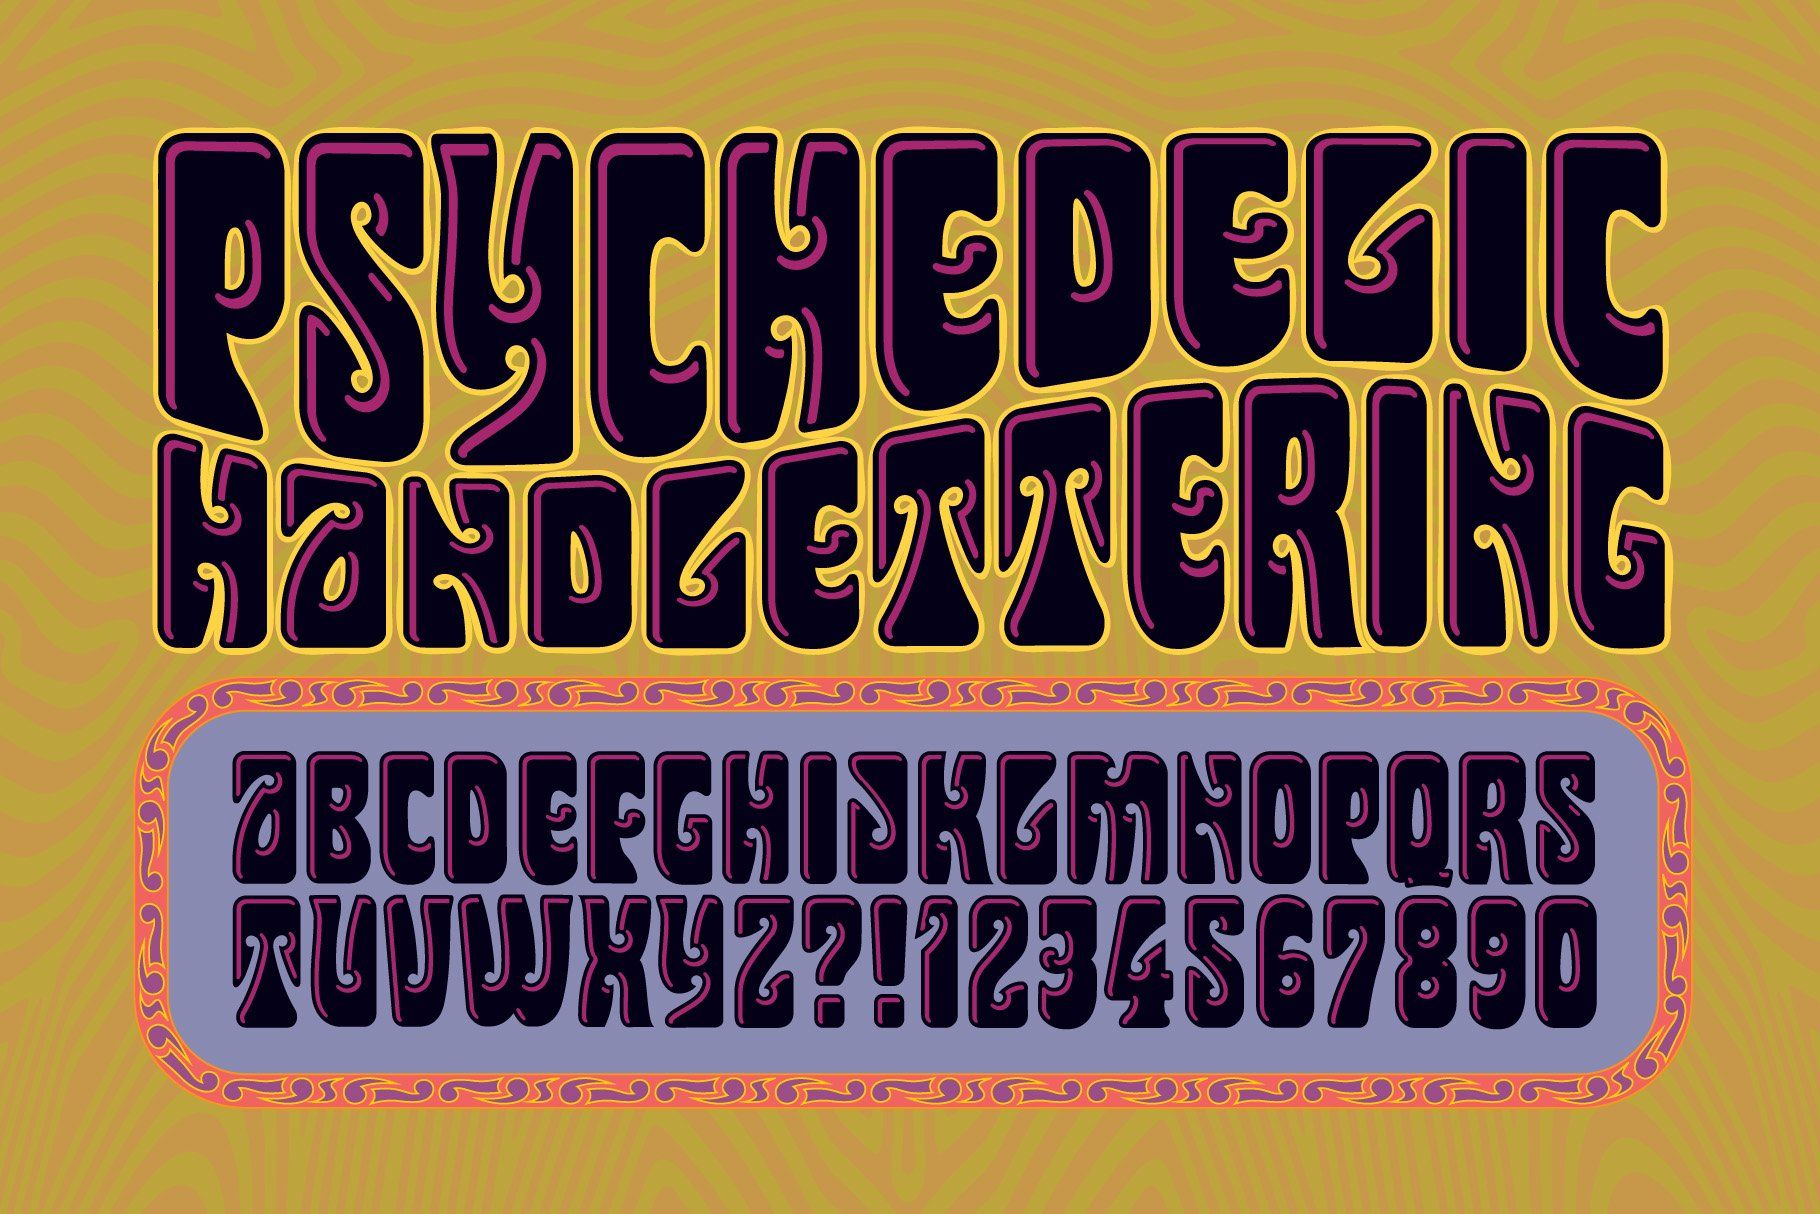 Psychedelic Handlettering In 2020 Psychedelic Poster Poster Design Software Hippie Font